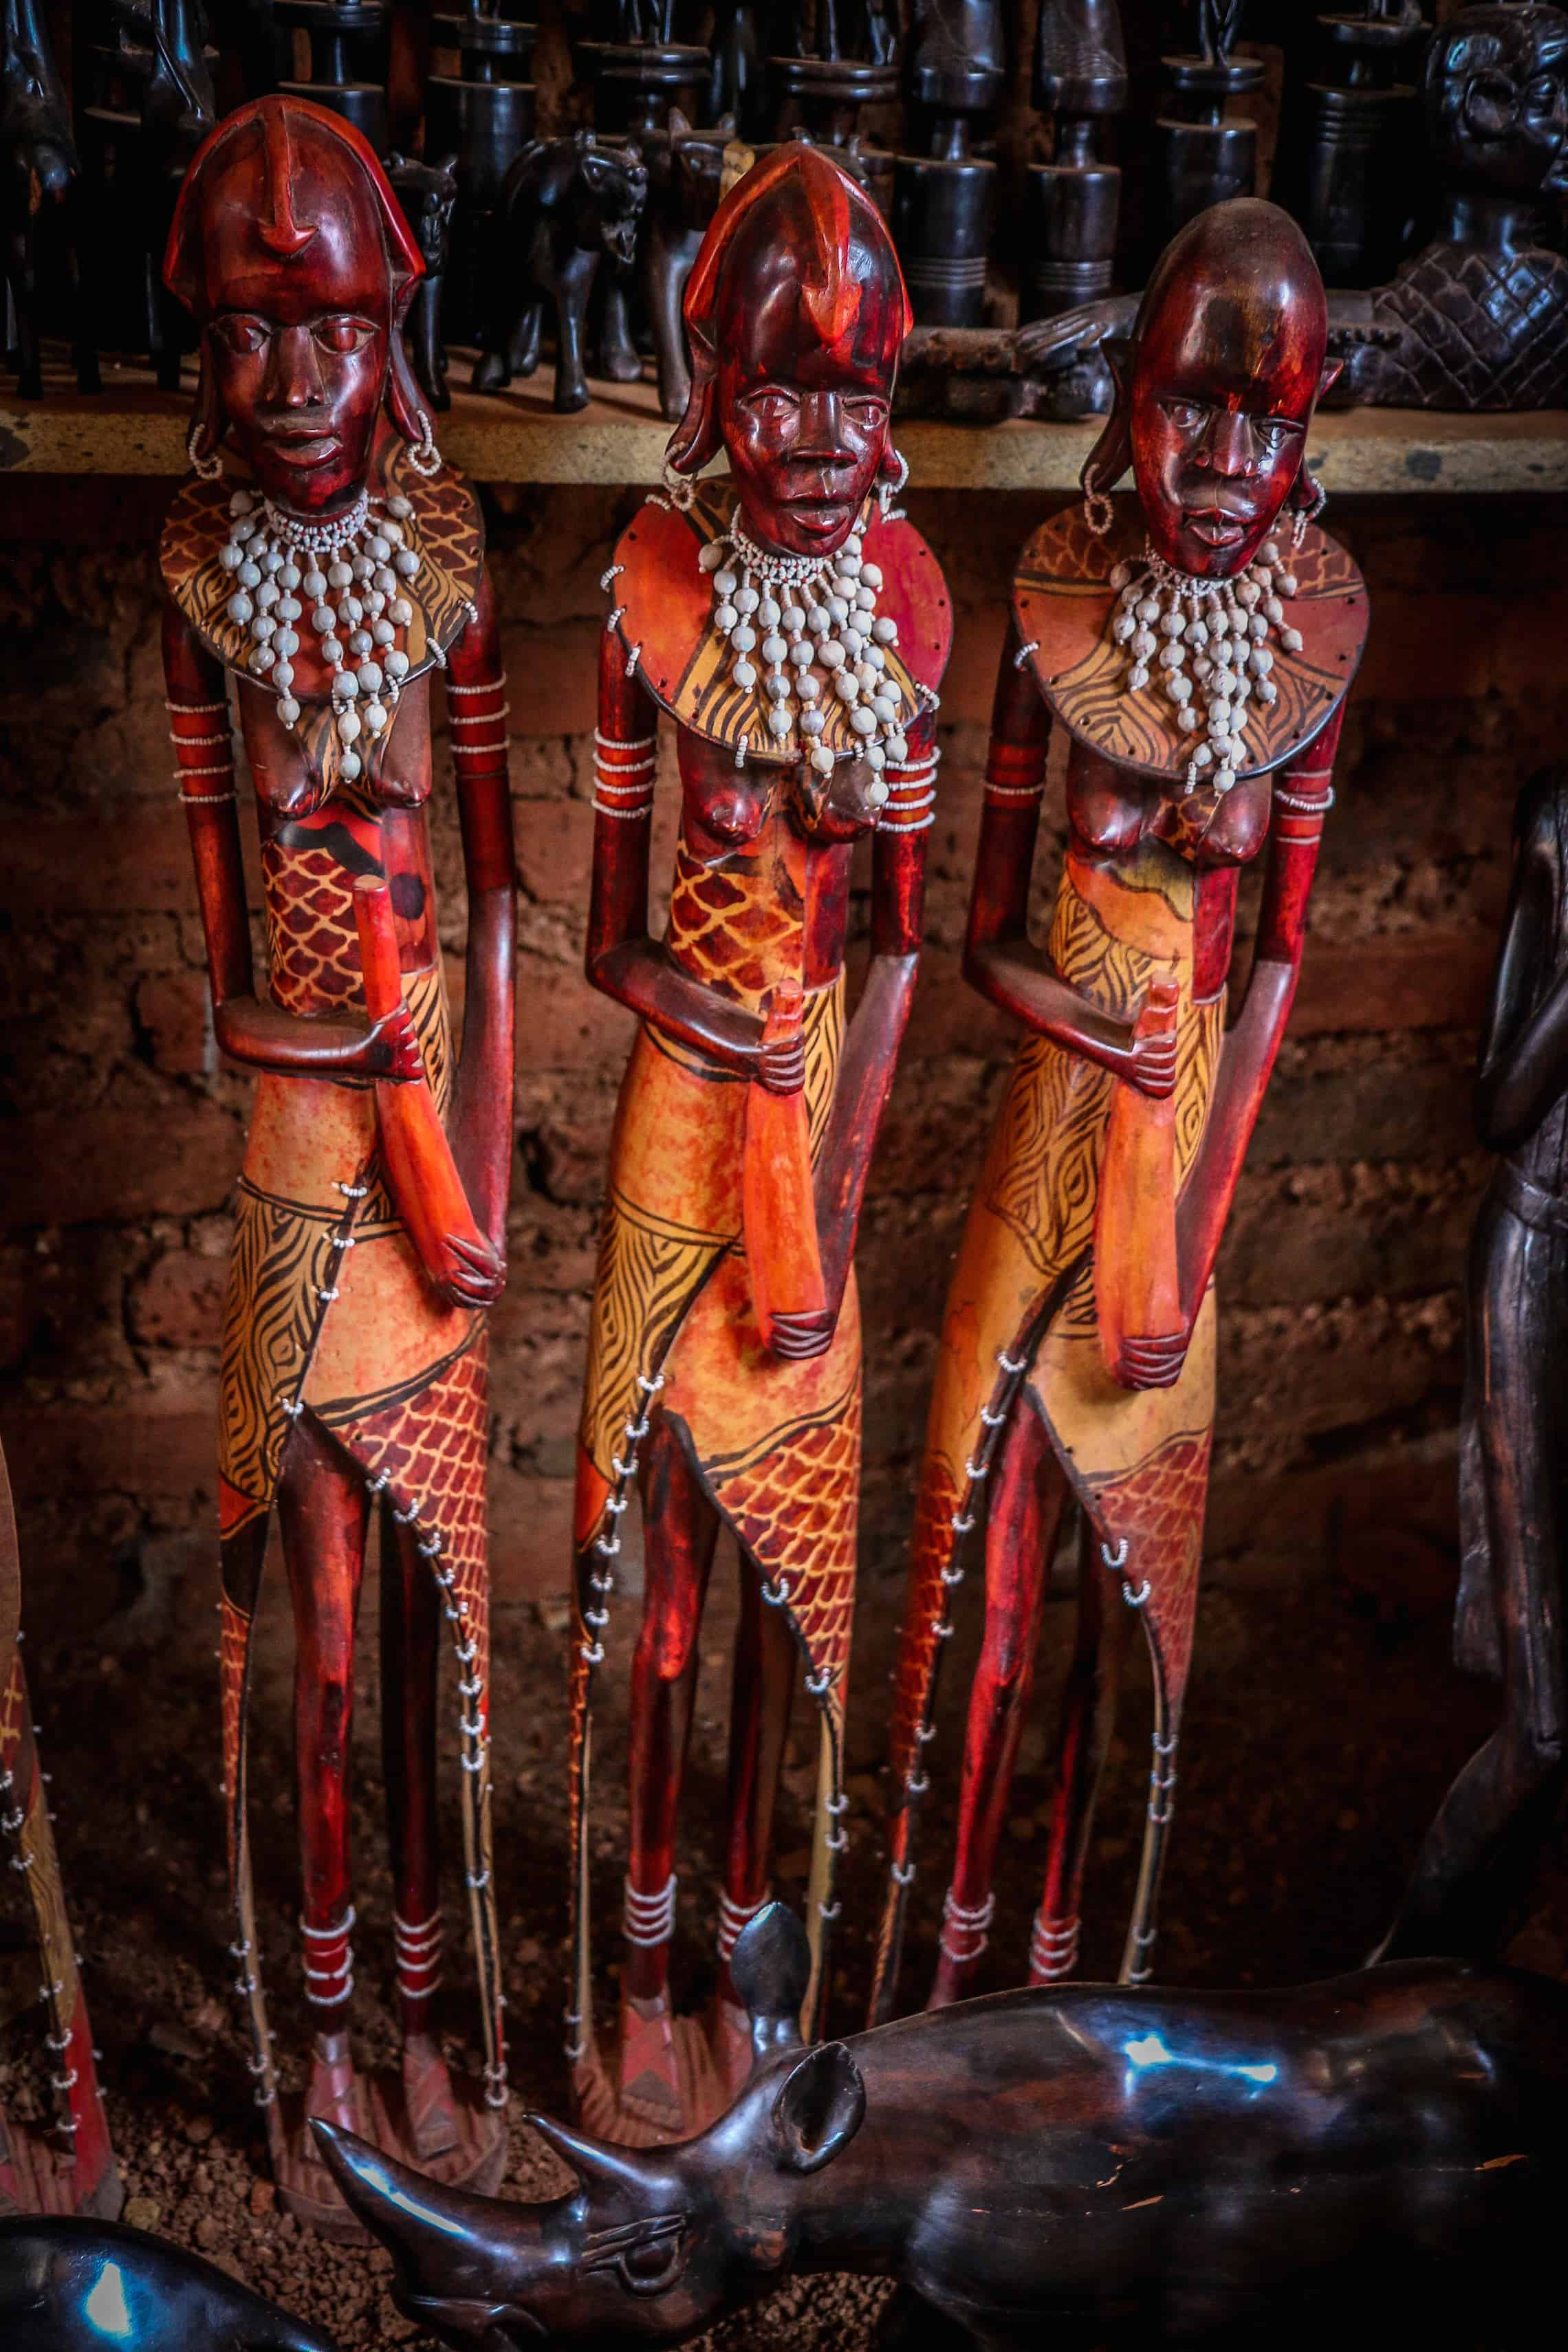 The Art of Maasai Culture: Hand Carved Wooden Statues